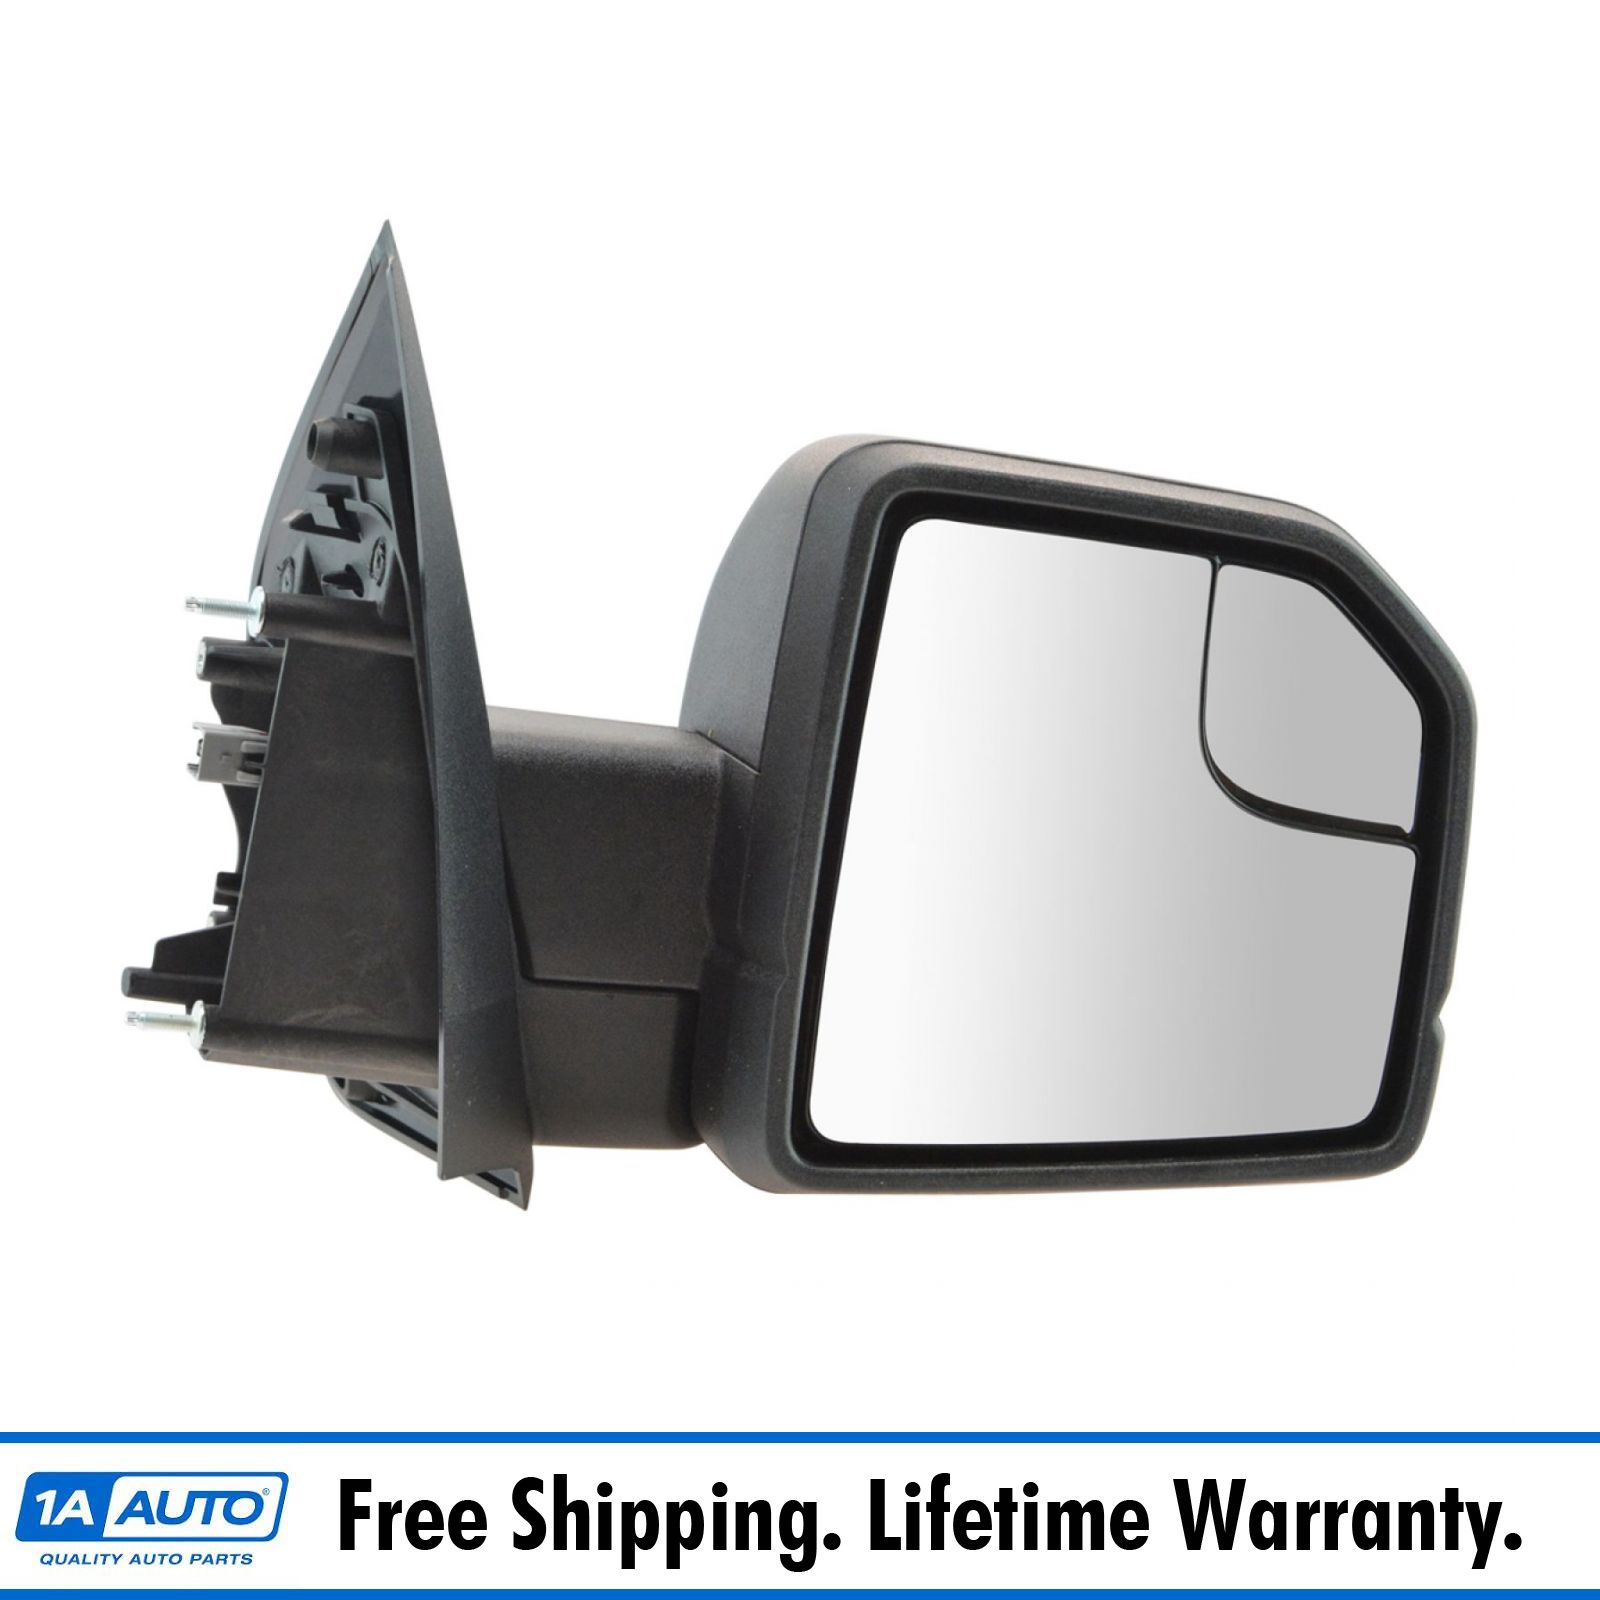 Details About Oem Black Textured Power Mirror With Spotter Glass Rh For F150 Pickup Truck New